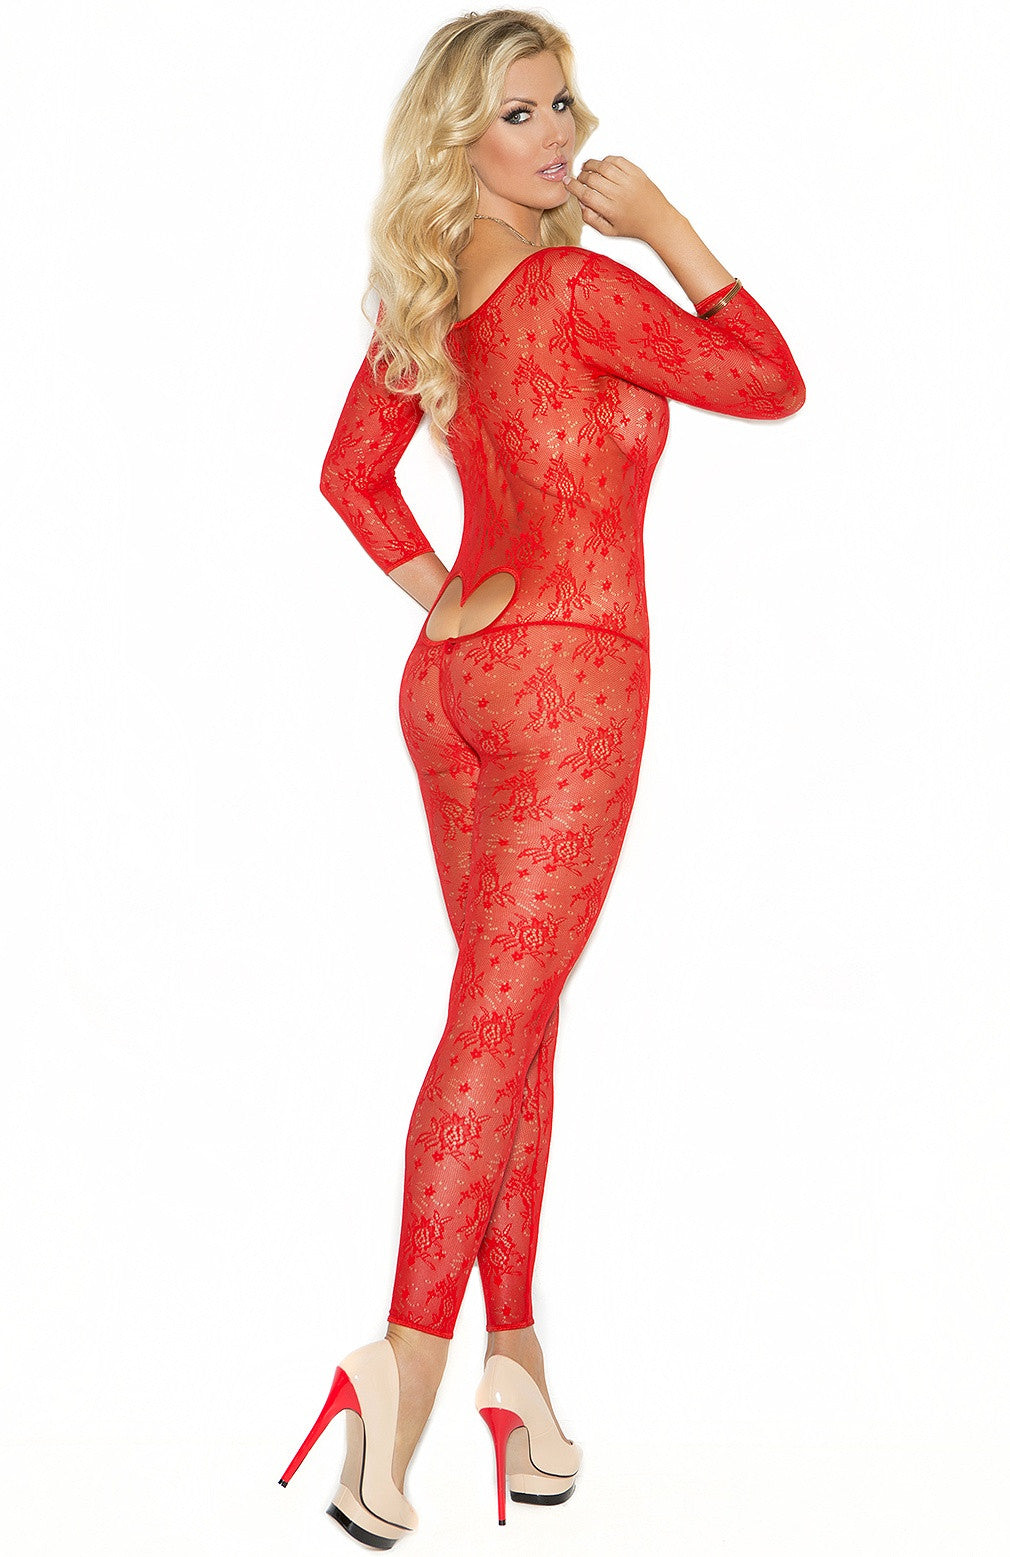 EM-1635 Valentine red bodystocking - Sexylingerieland